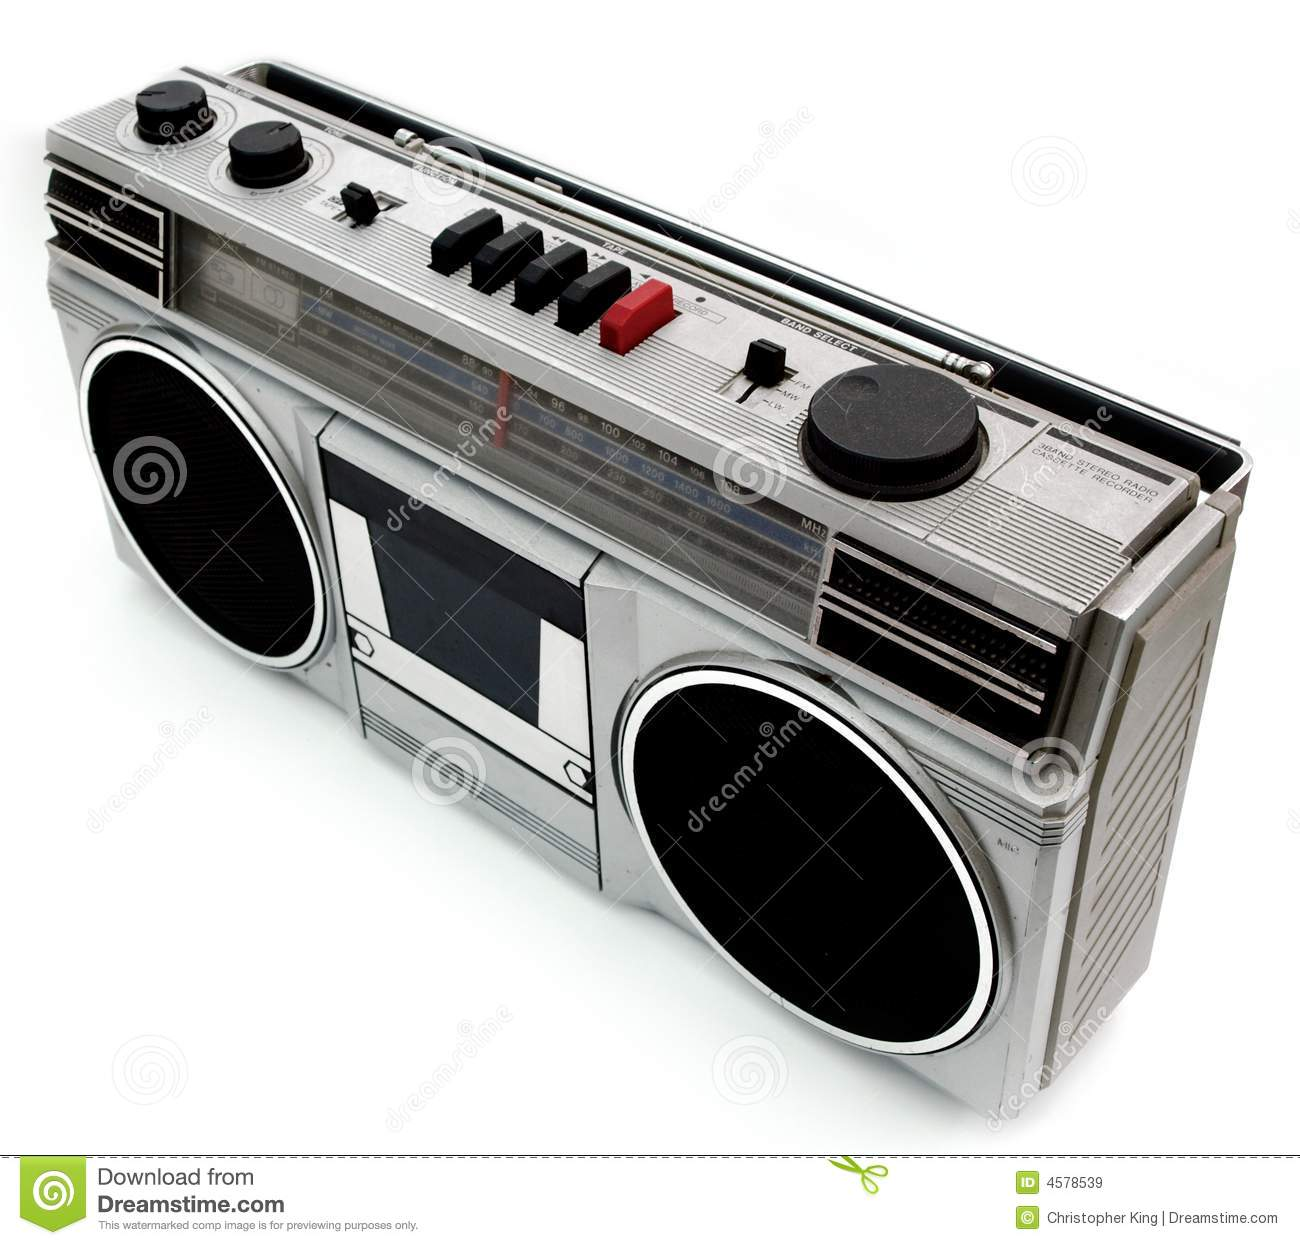 Royalty Free Stock Images 1980s Style Portable Cassette Player Image4578539 also Rko Radio Tower furthermore Boston Skyline Rick Berk besides Royalty Free Stock Photo Birthday Hat 0027 Image22094445 as well Old French Farmhouse Anthony Forster. on old radio clip art